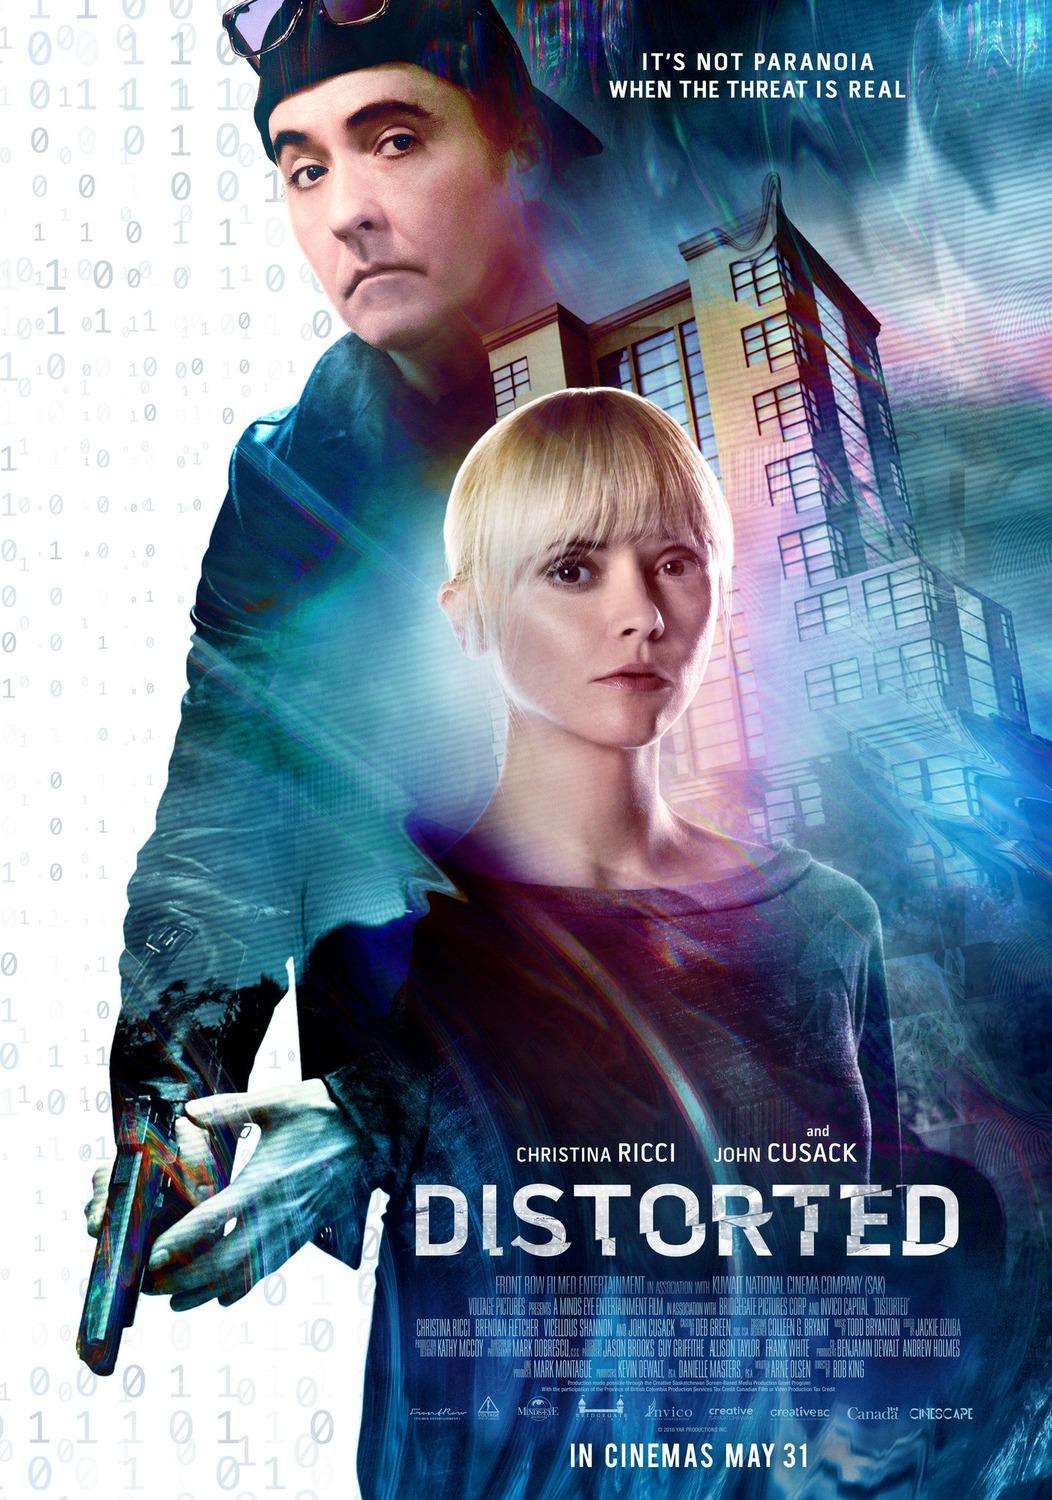 Distorted Movie Poster...